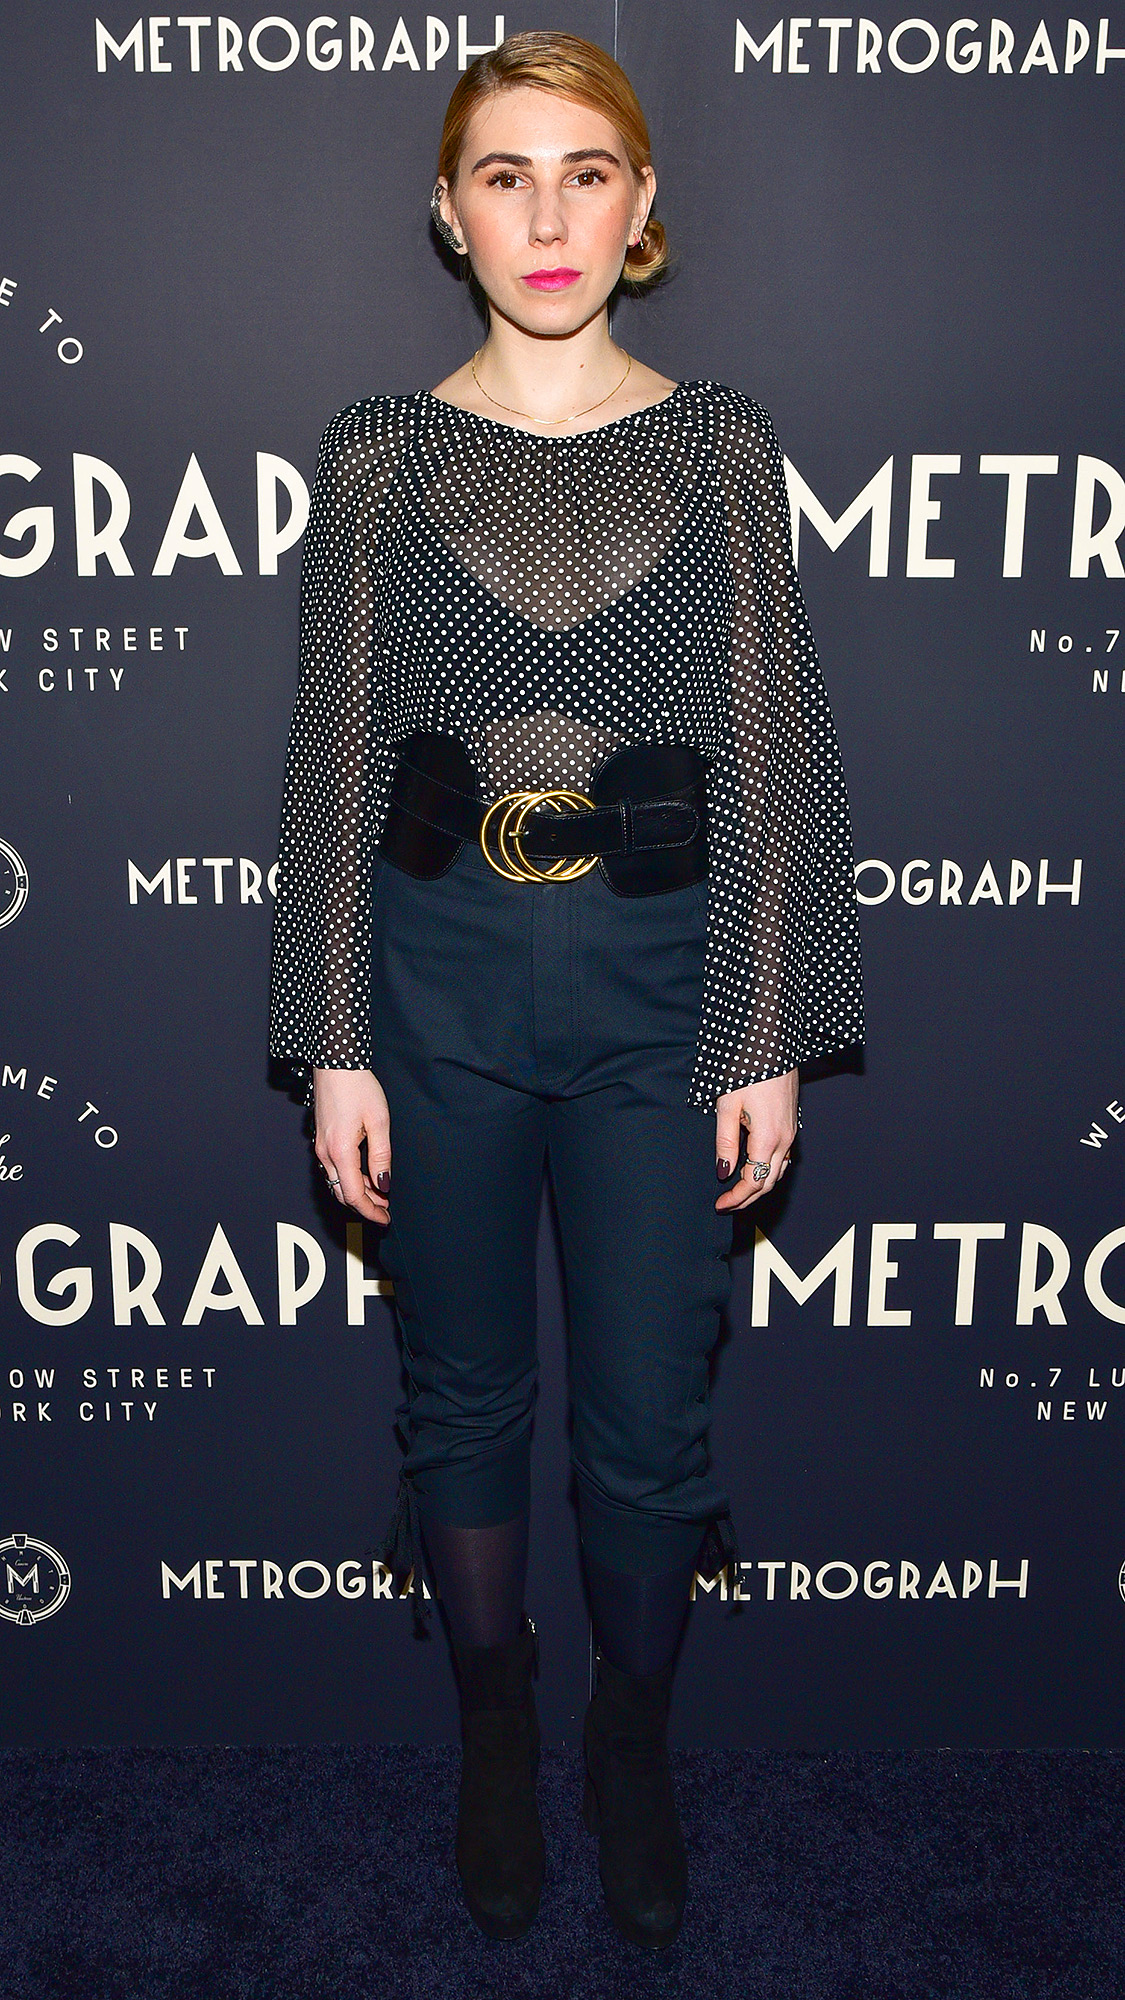 Metrograph 1st Anniversary Party